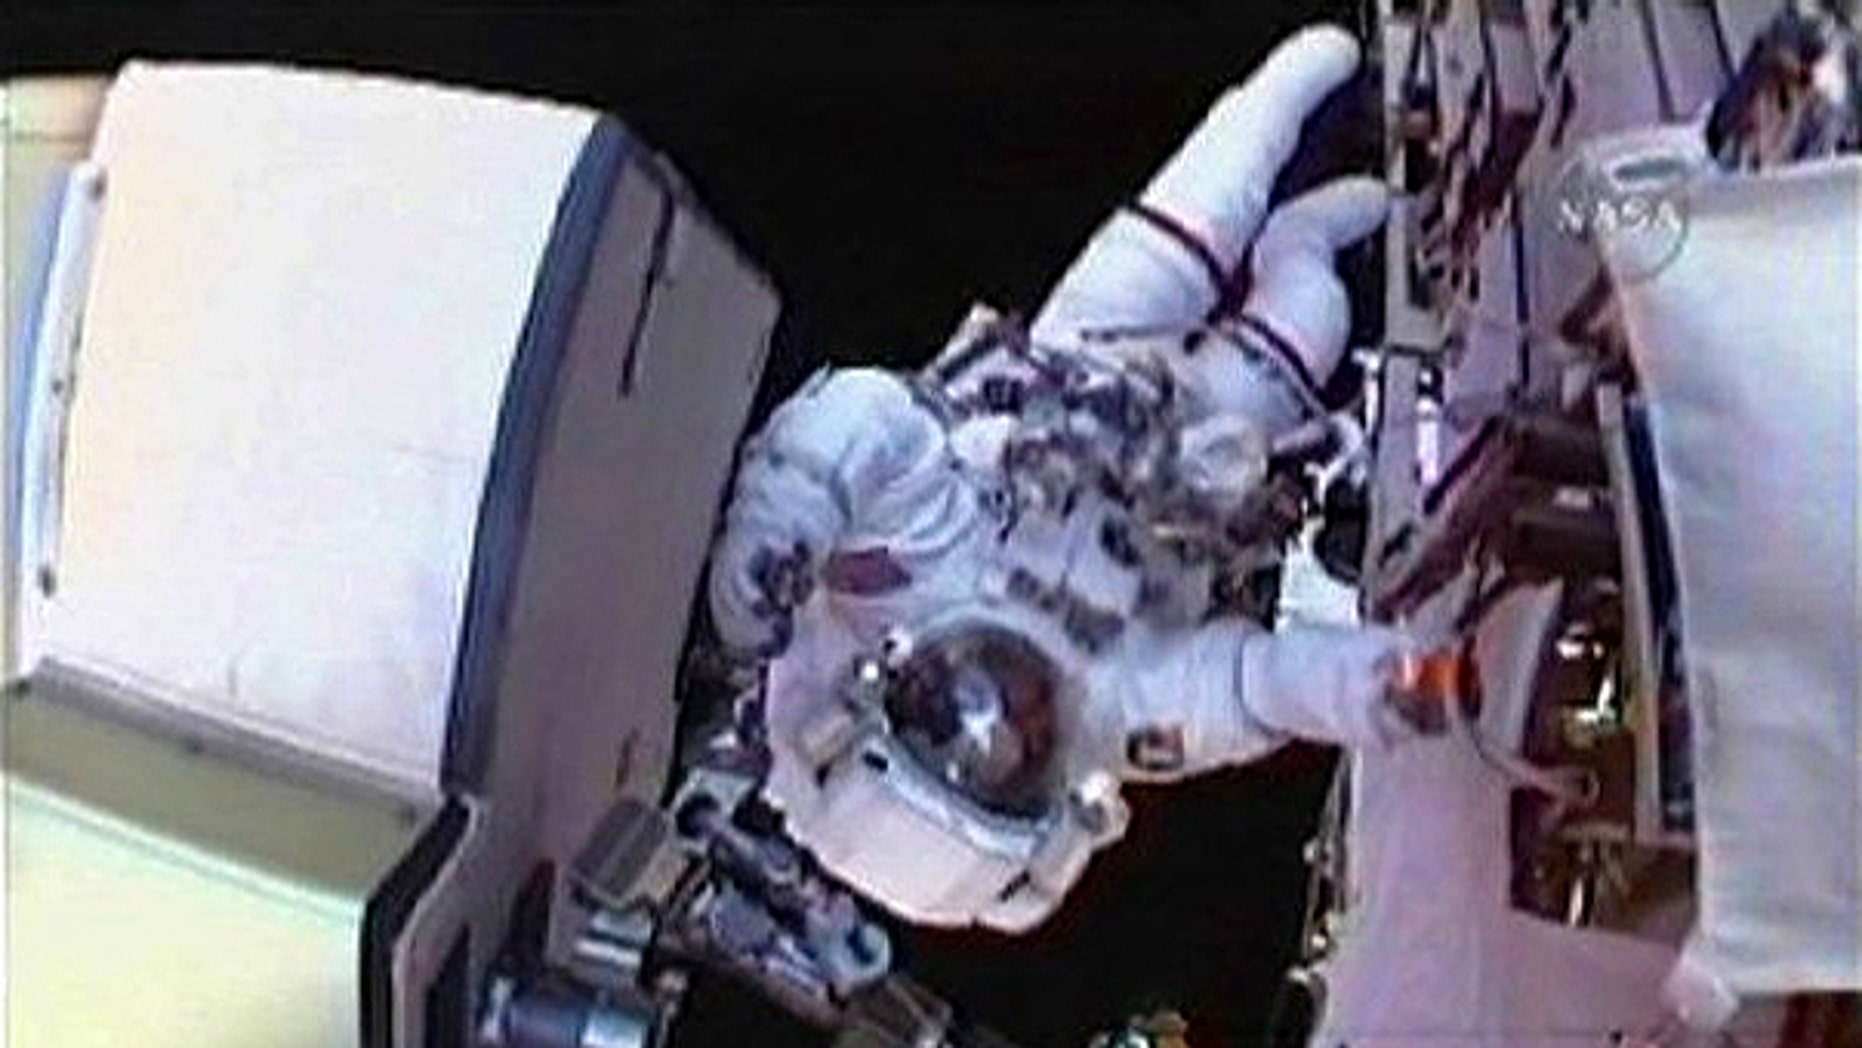 May 19: Space Shuttle Atlantis astronaut Stephen Bowen is seen from fellow spacewalker Michael Good's helmet camera as the pair work to replace batteries on the International Space Station's port solar array in this image from NASA TV.